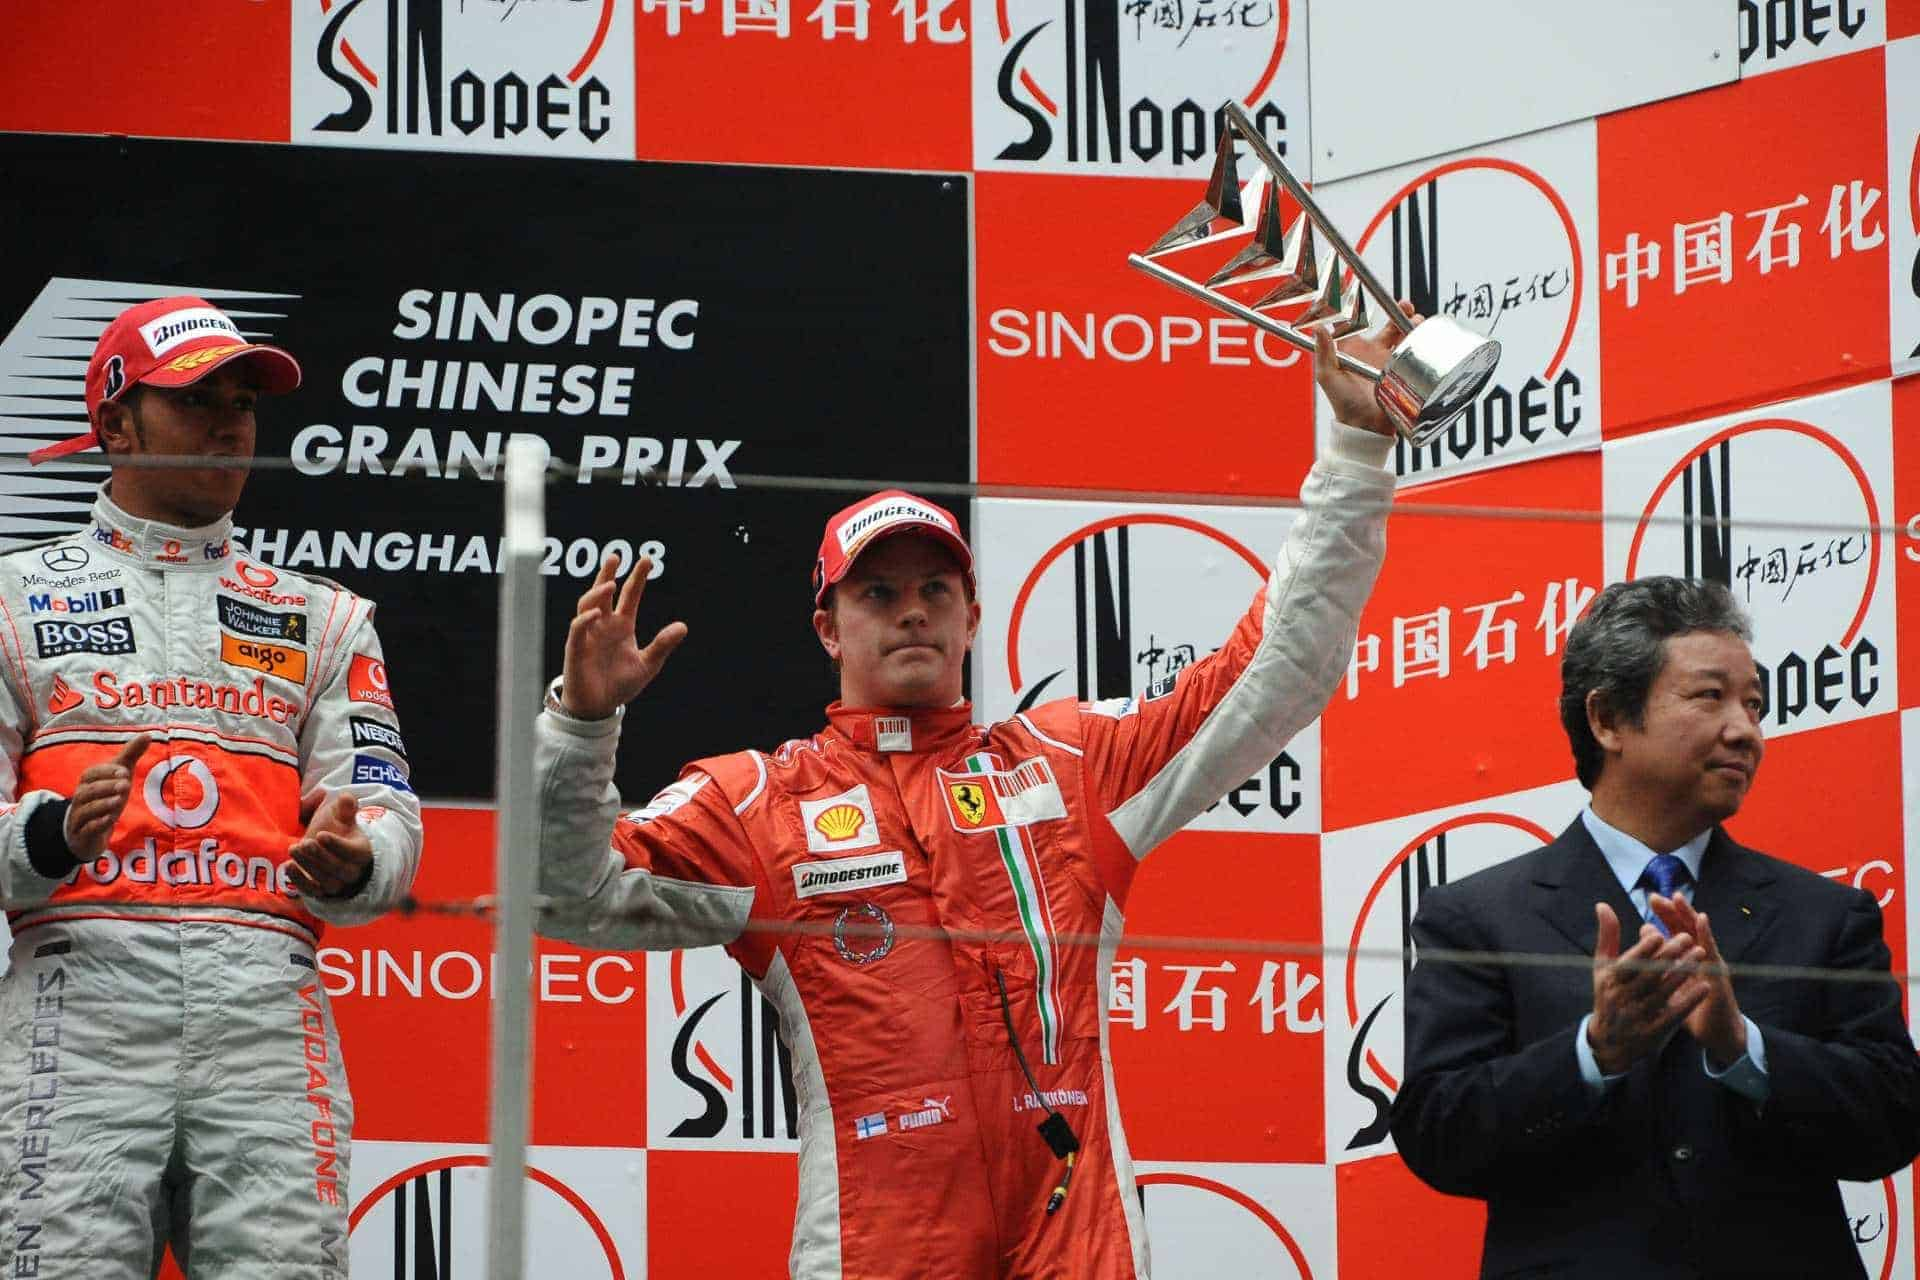 CHinese GP F1 2008 podium Photo Ferrari